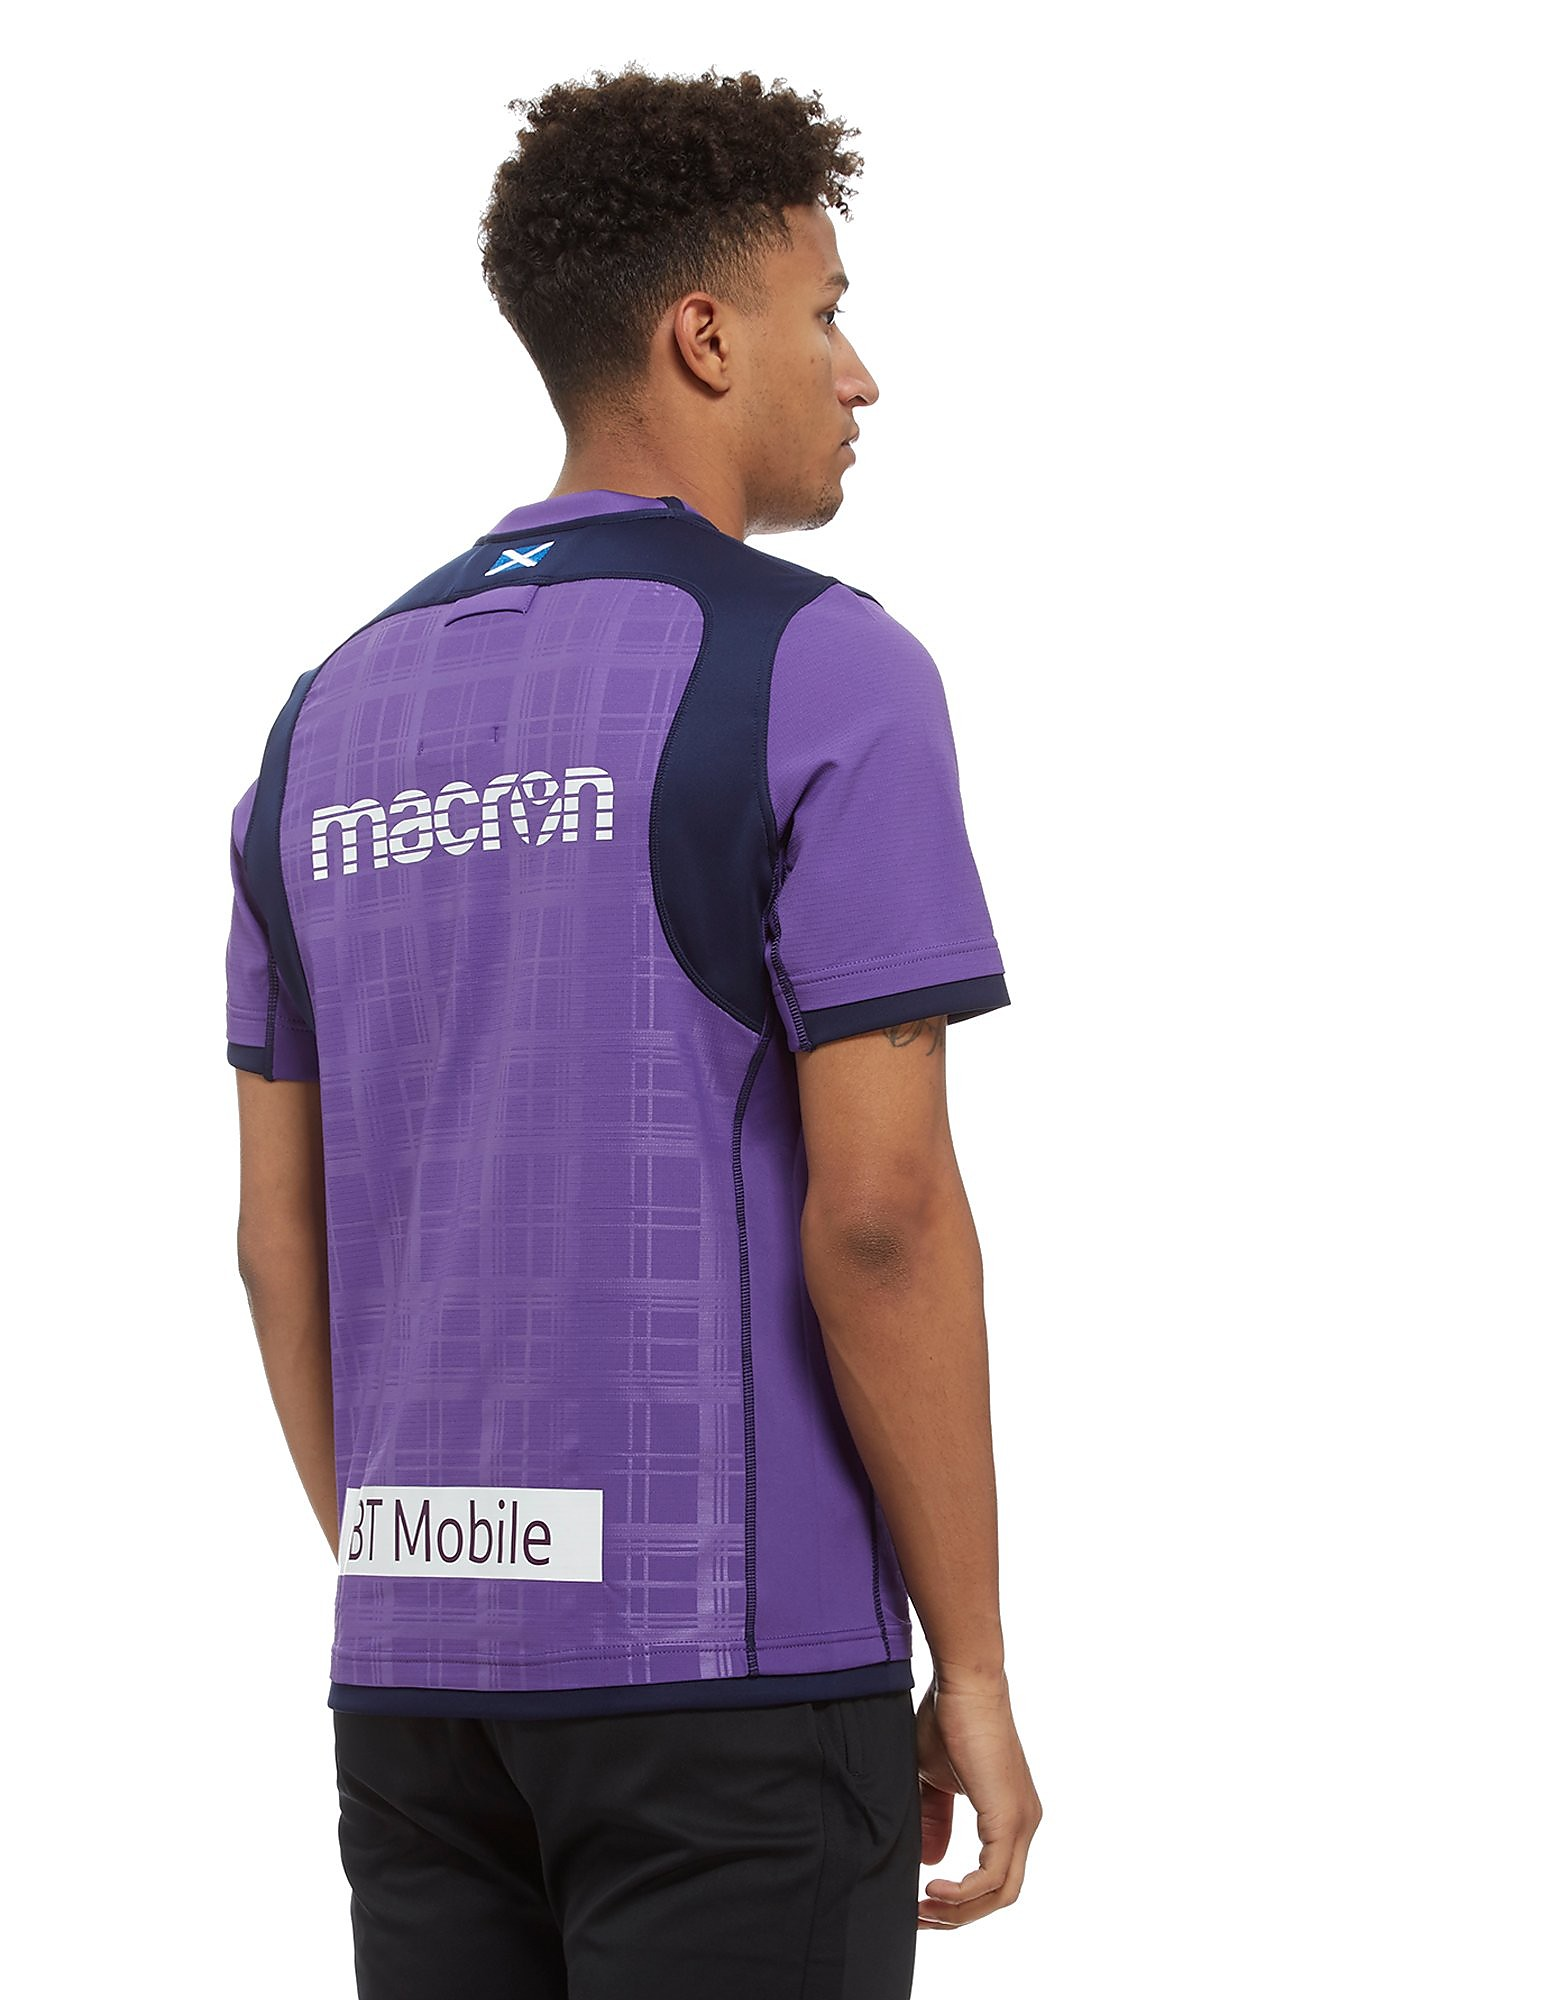 Macron Scotland Rugby 2017/18 Training Shirt